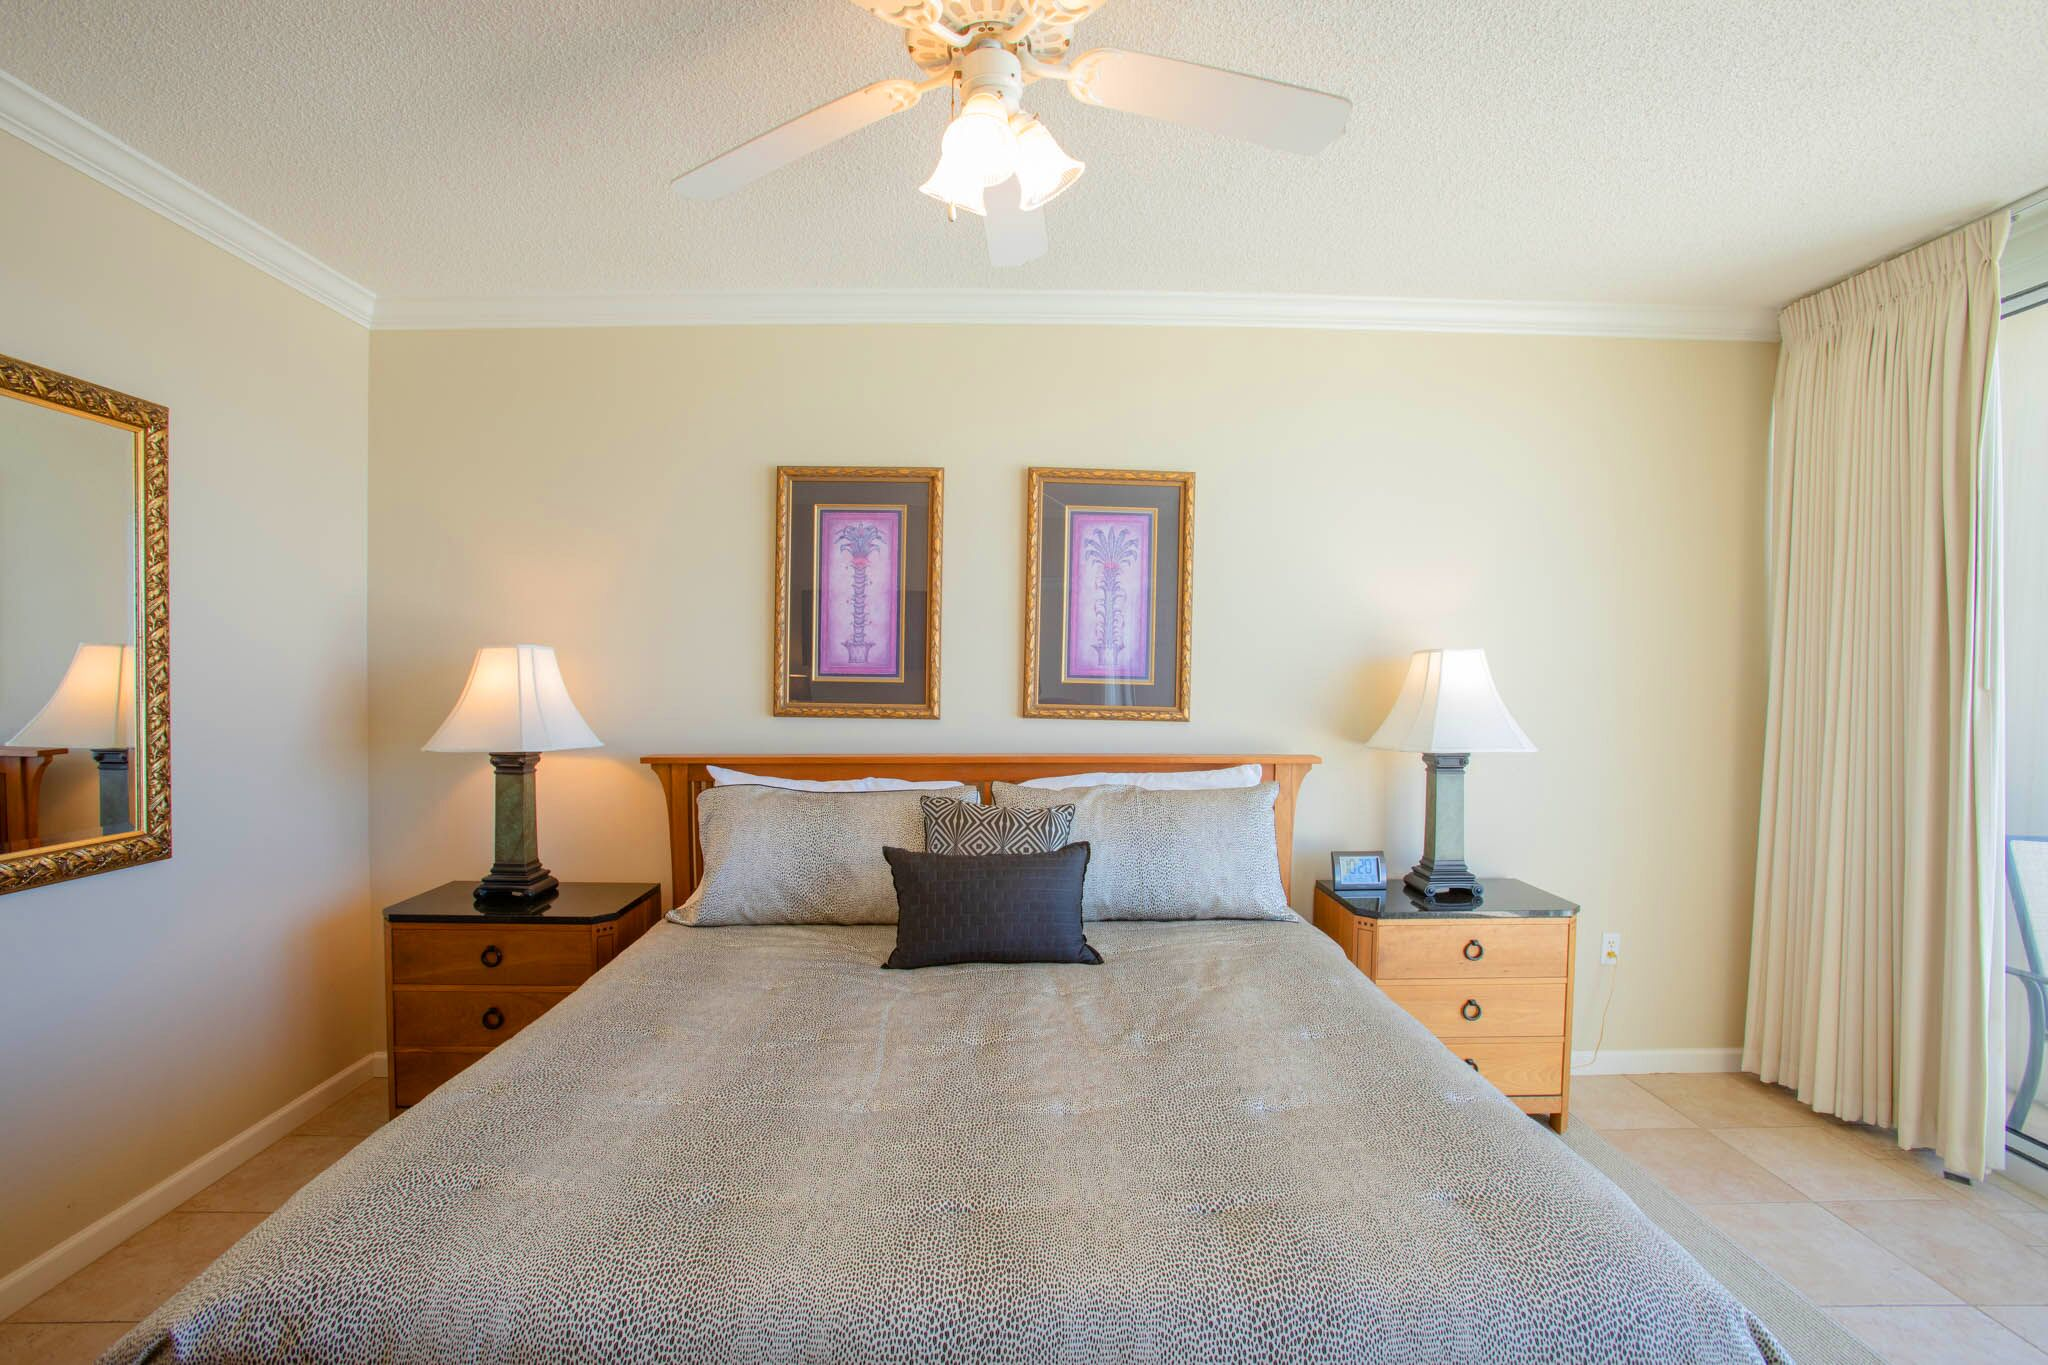 The Pearl of Navarre #504 Condo rental in The Pearl of Navarre Beach in Navarre Florida - #11